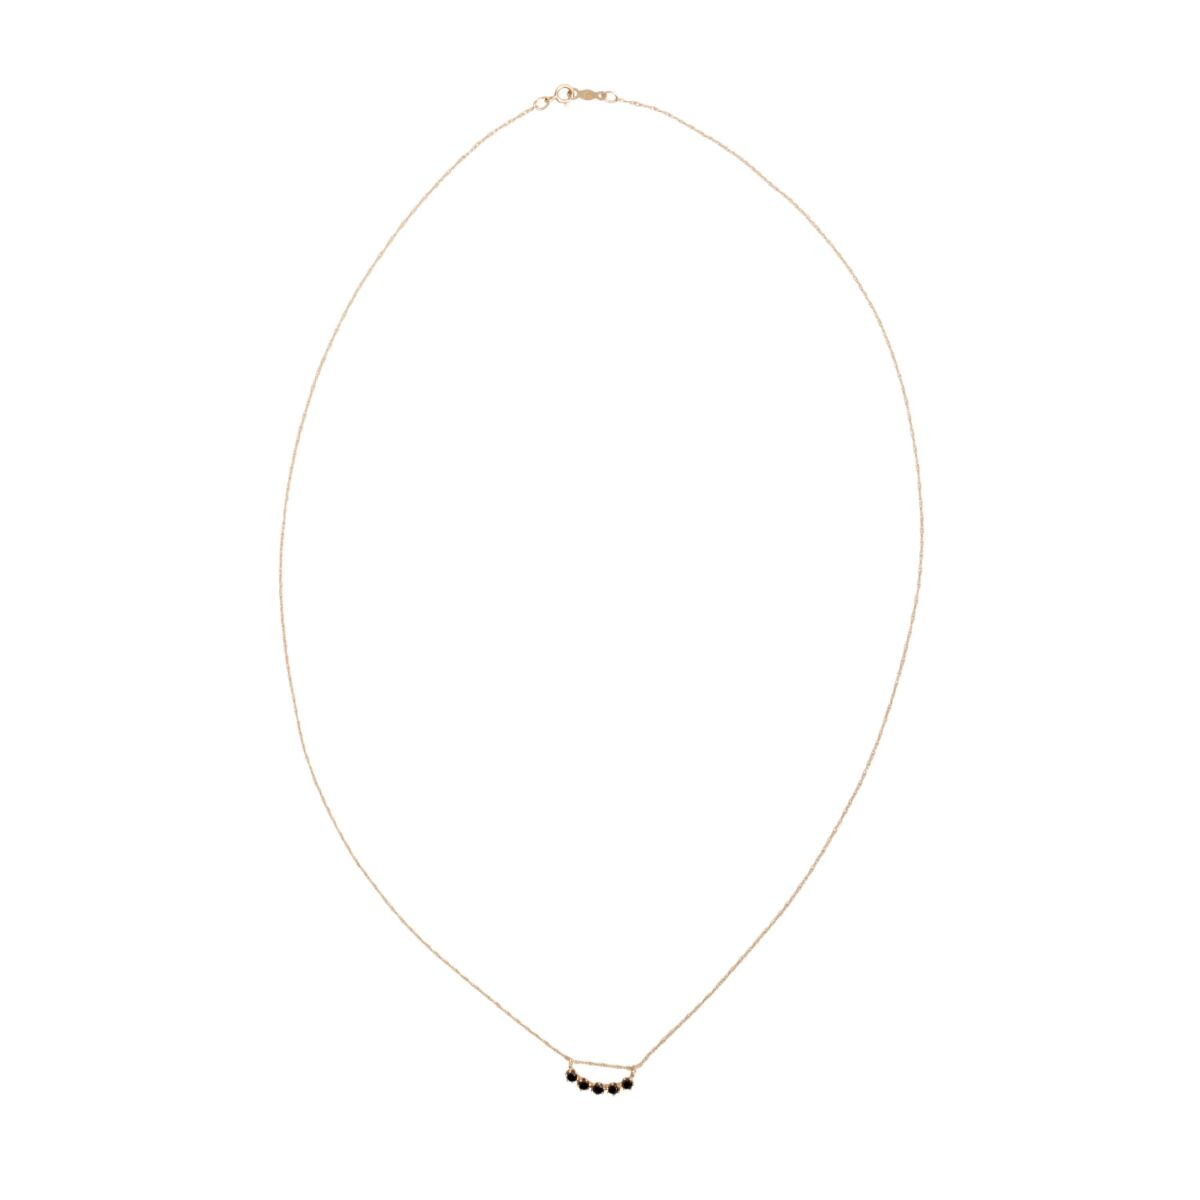 Majesty Curve Necklace, Black Diamond image